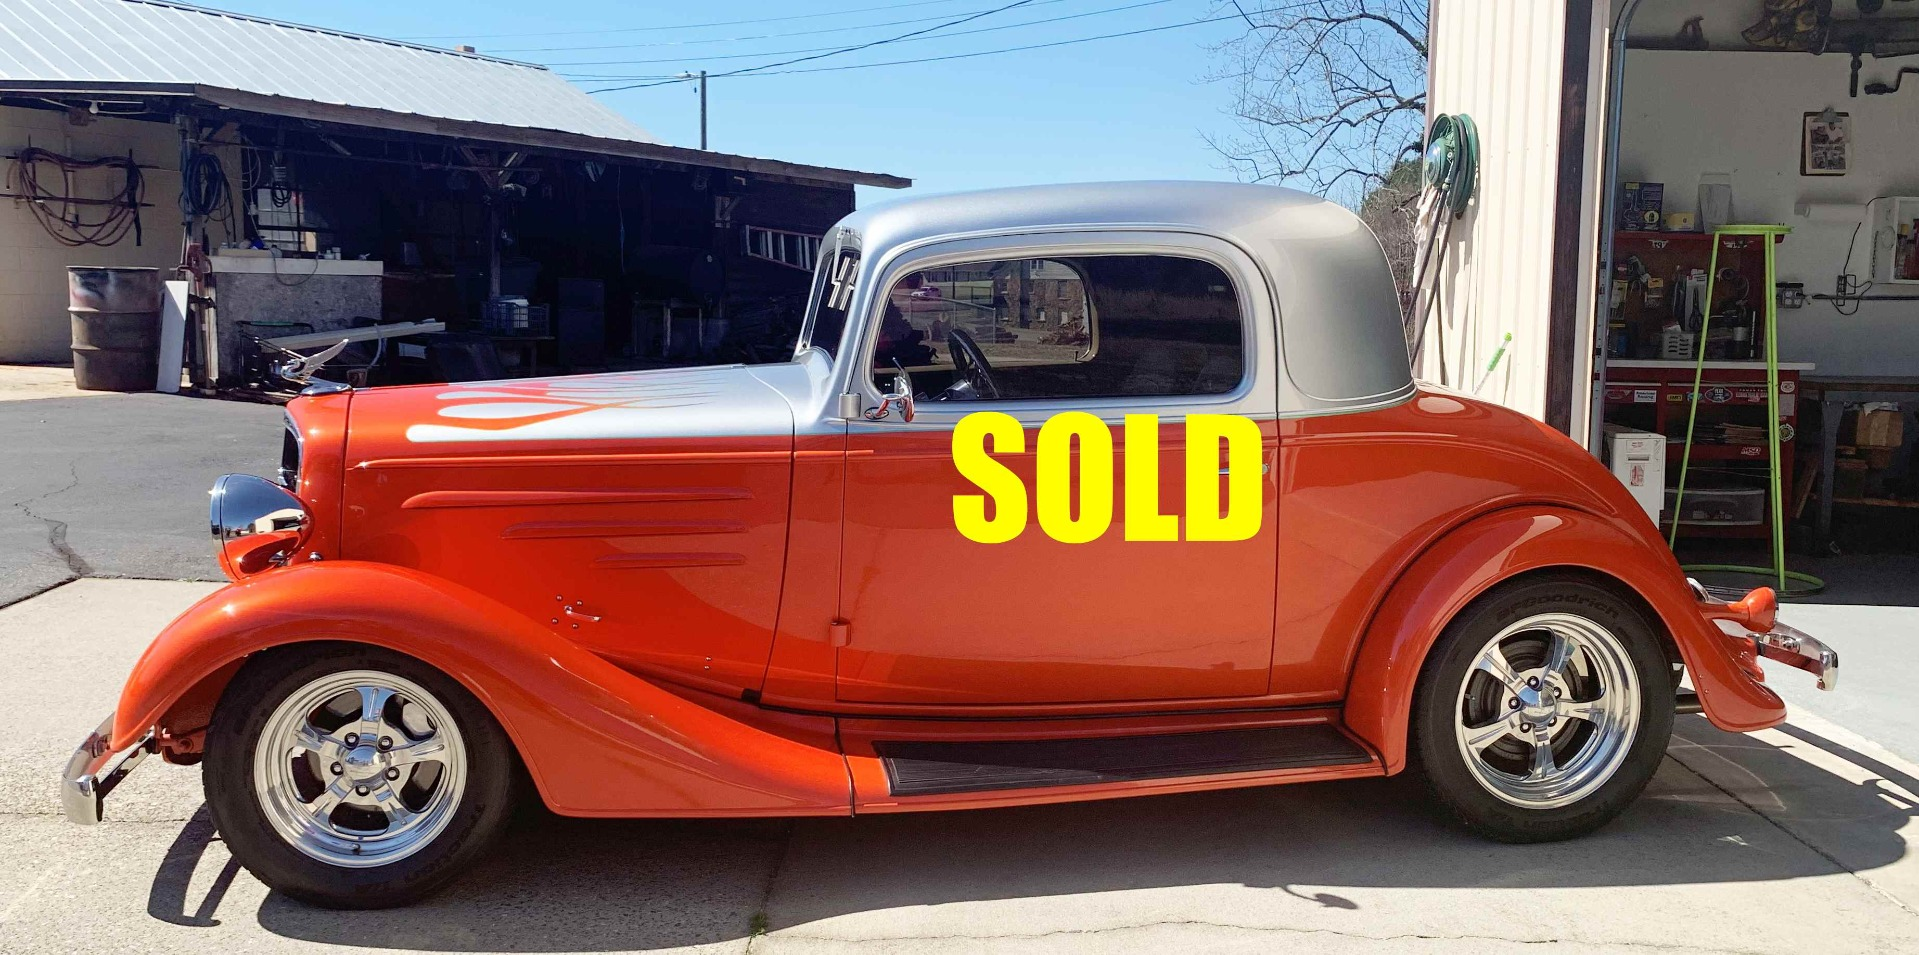 New 1935 Chevrolet 3 Window Coupe  160 , For Sale $62000, Call Us: (704) 996-3735